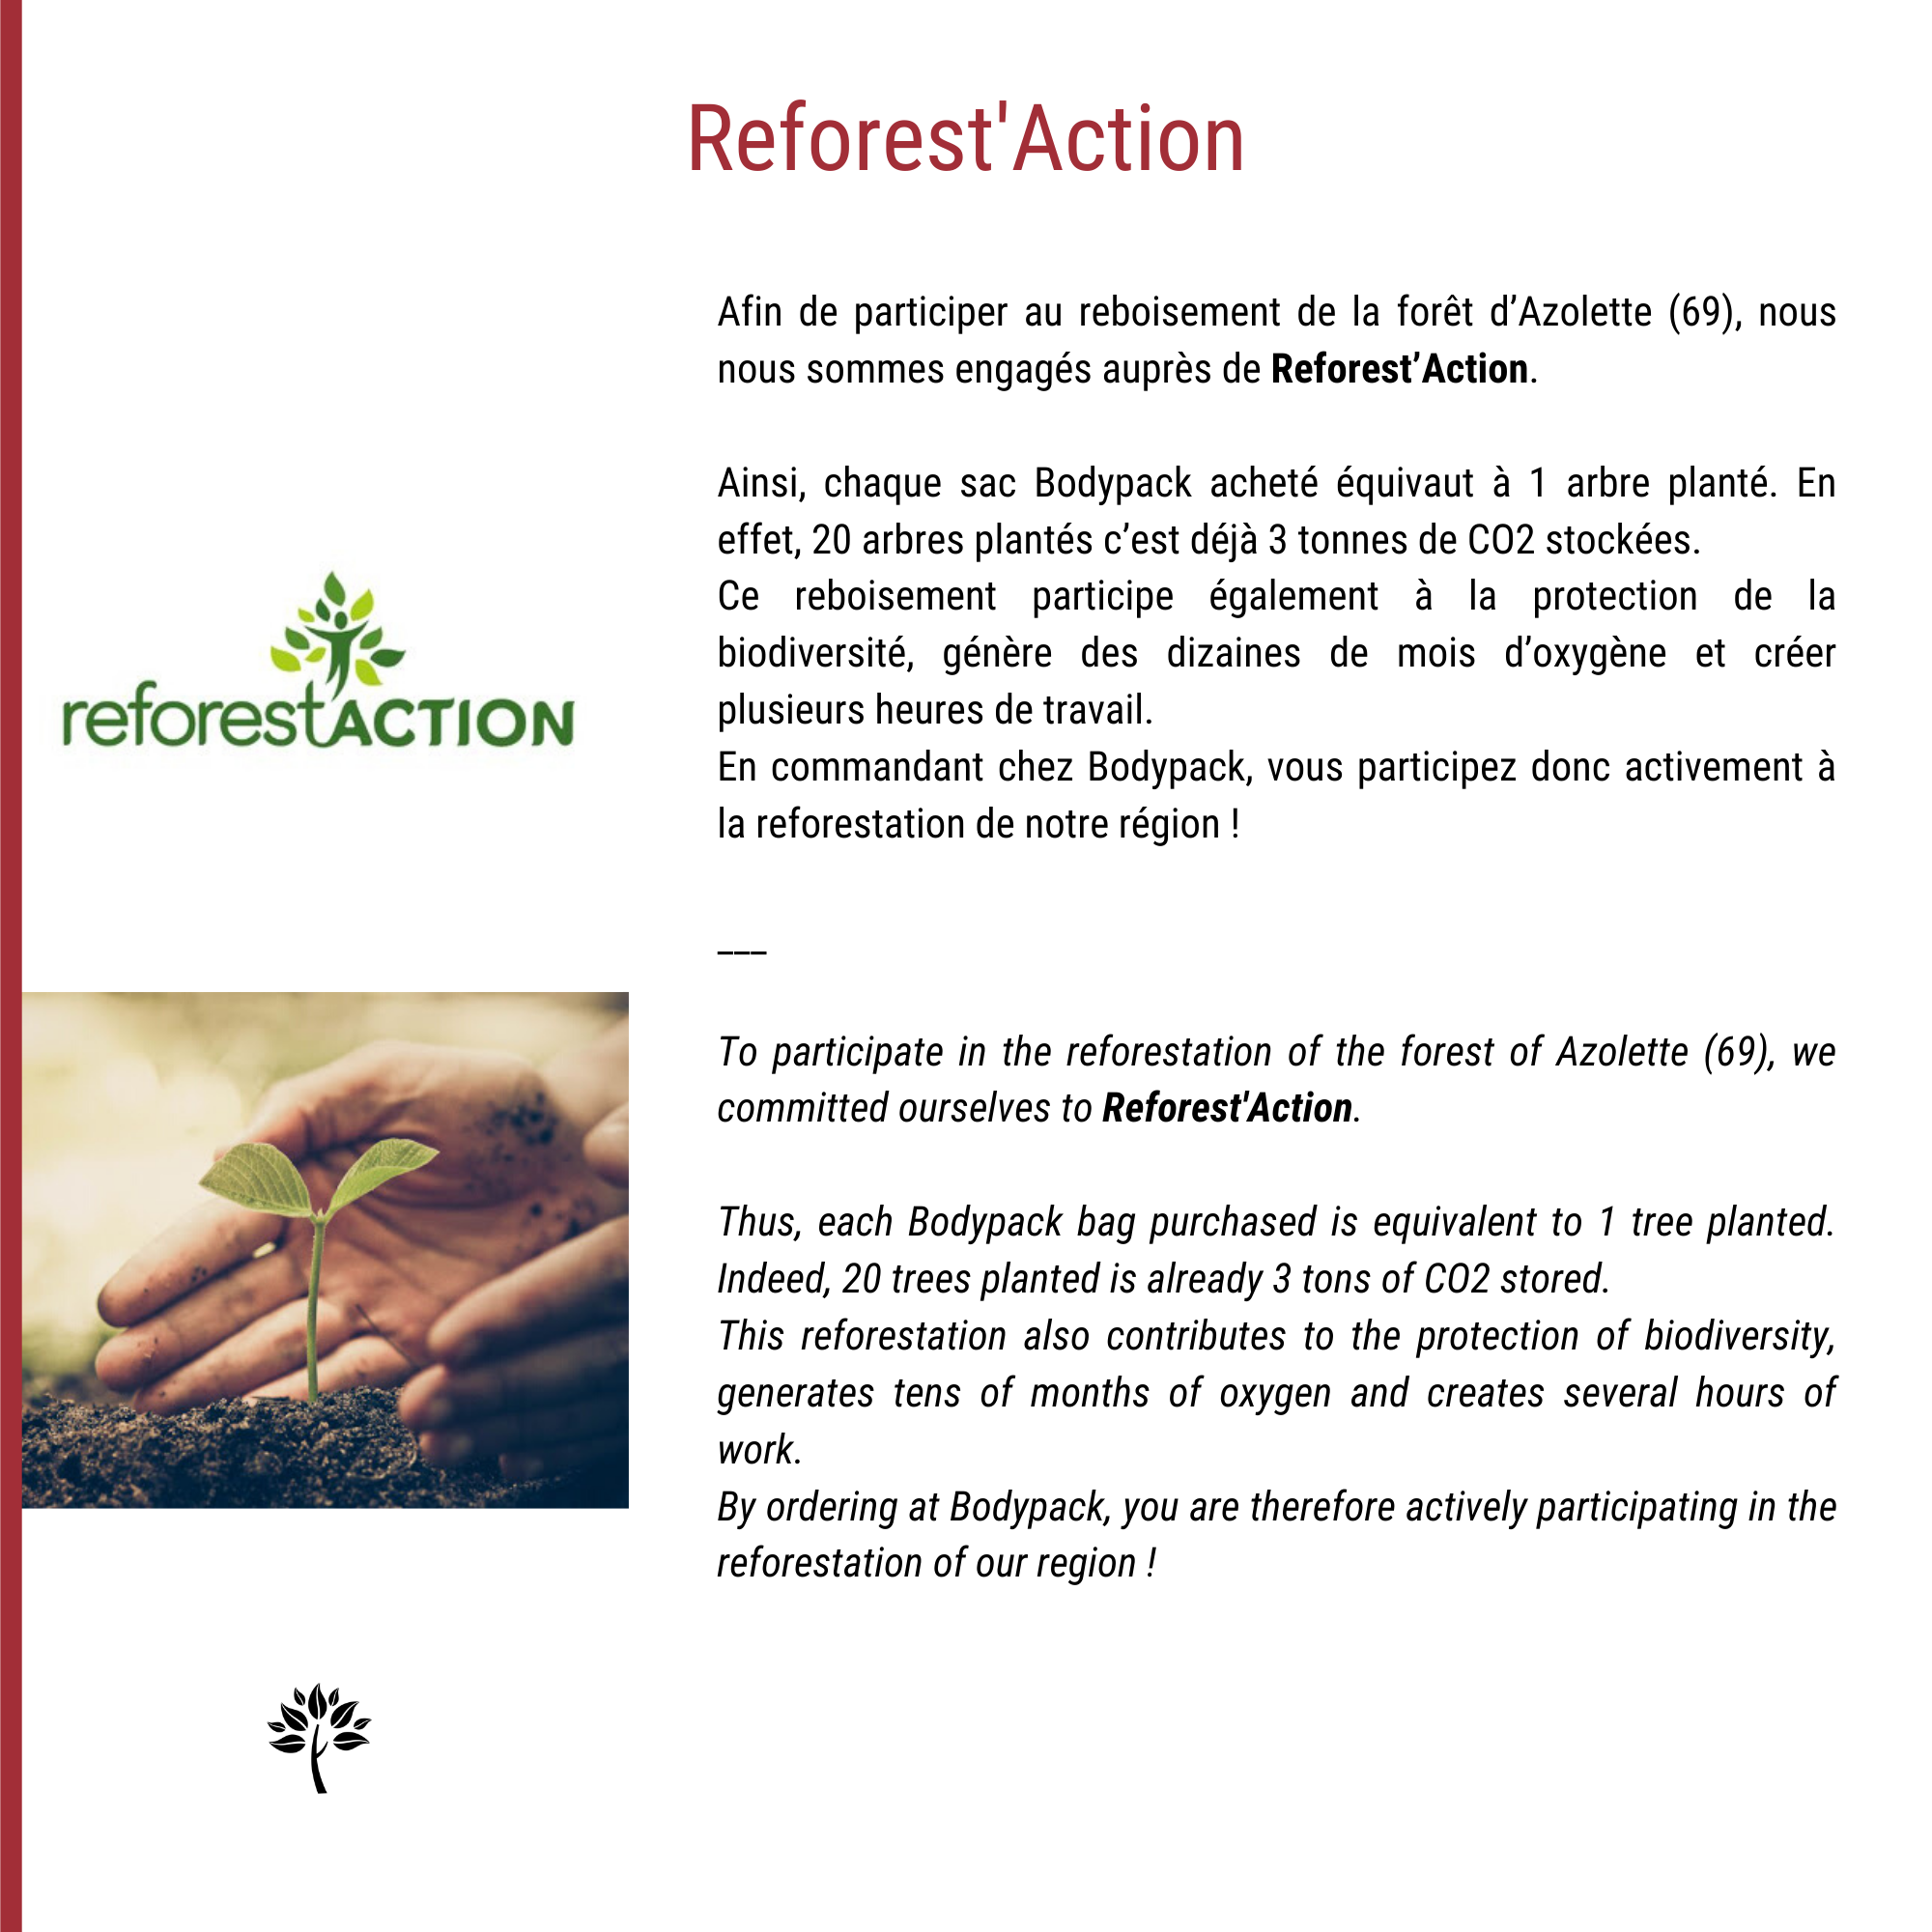 Reforestation one of the brand's priorities